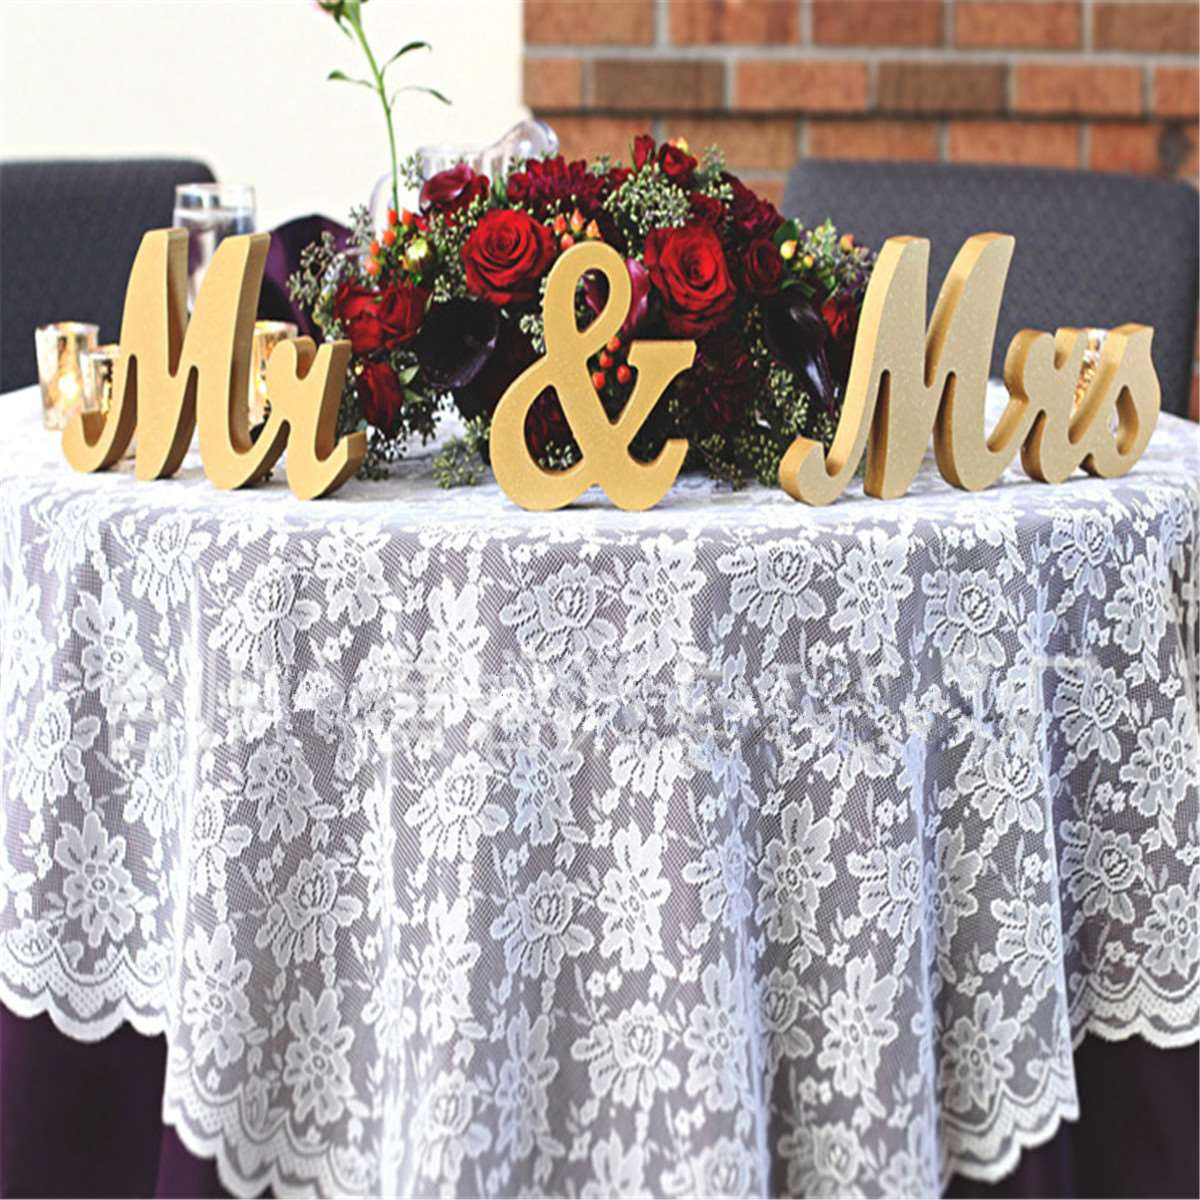 Online Get Cheap Table Signs Aliexpress Alibaba Group Gold Wooden Mr Mrs  Standing Letters Wedding Table